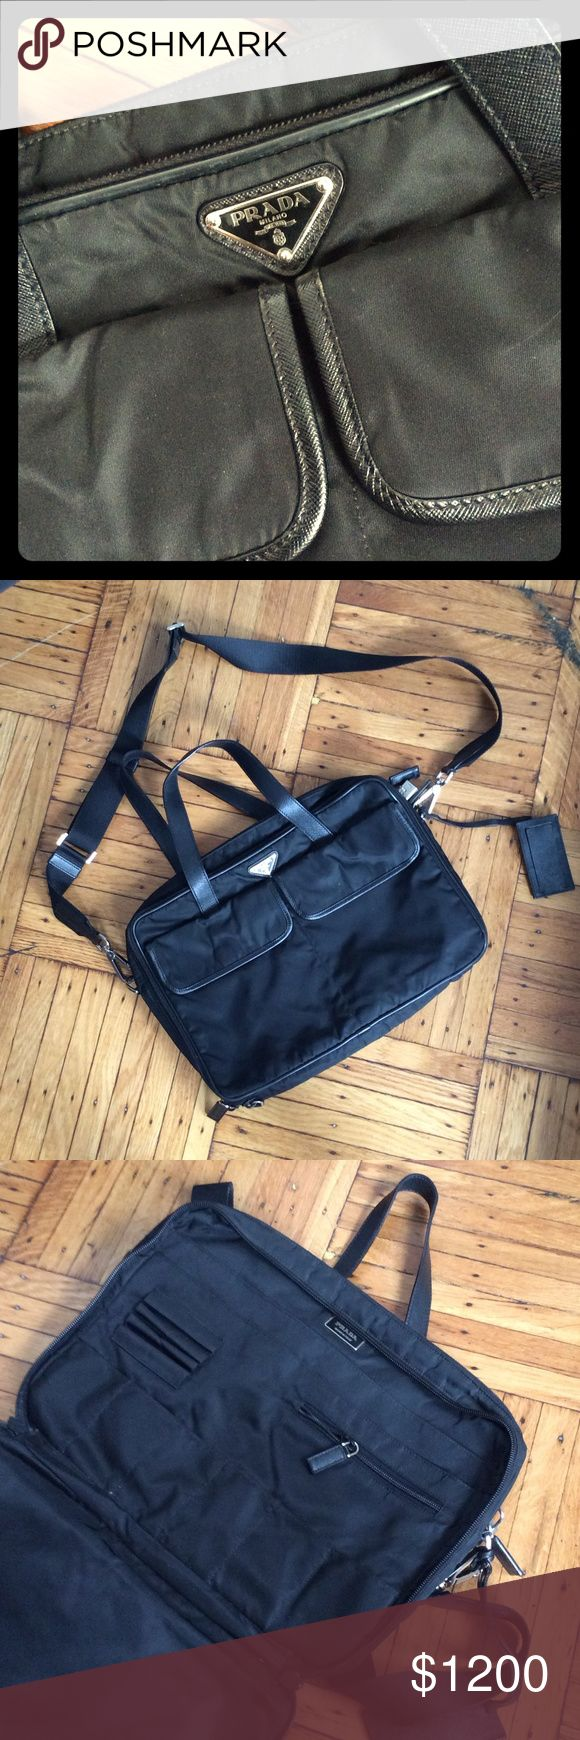 Prada crossbody laptop case MINT Mens (or womens) cross body nylon Laptop and messenger bag, NEVER USED but natural shop wear and tear.  Certificate of authenticity card included. Message for more photos or questions Prada Bags Laptop Bags